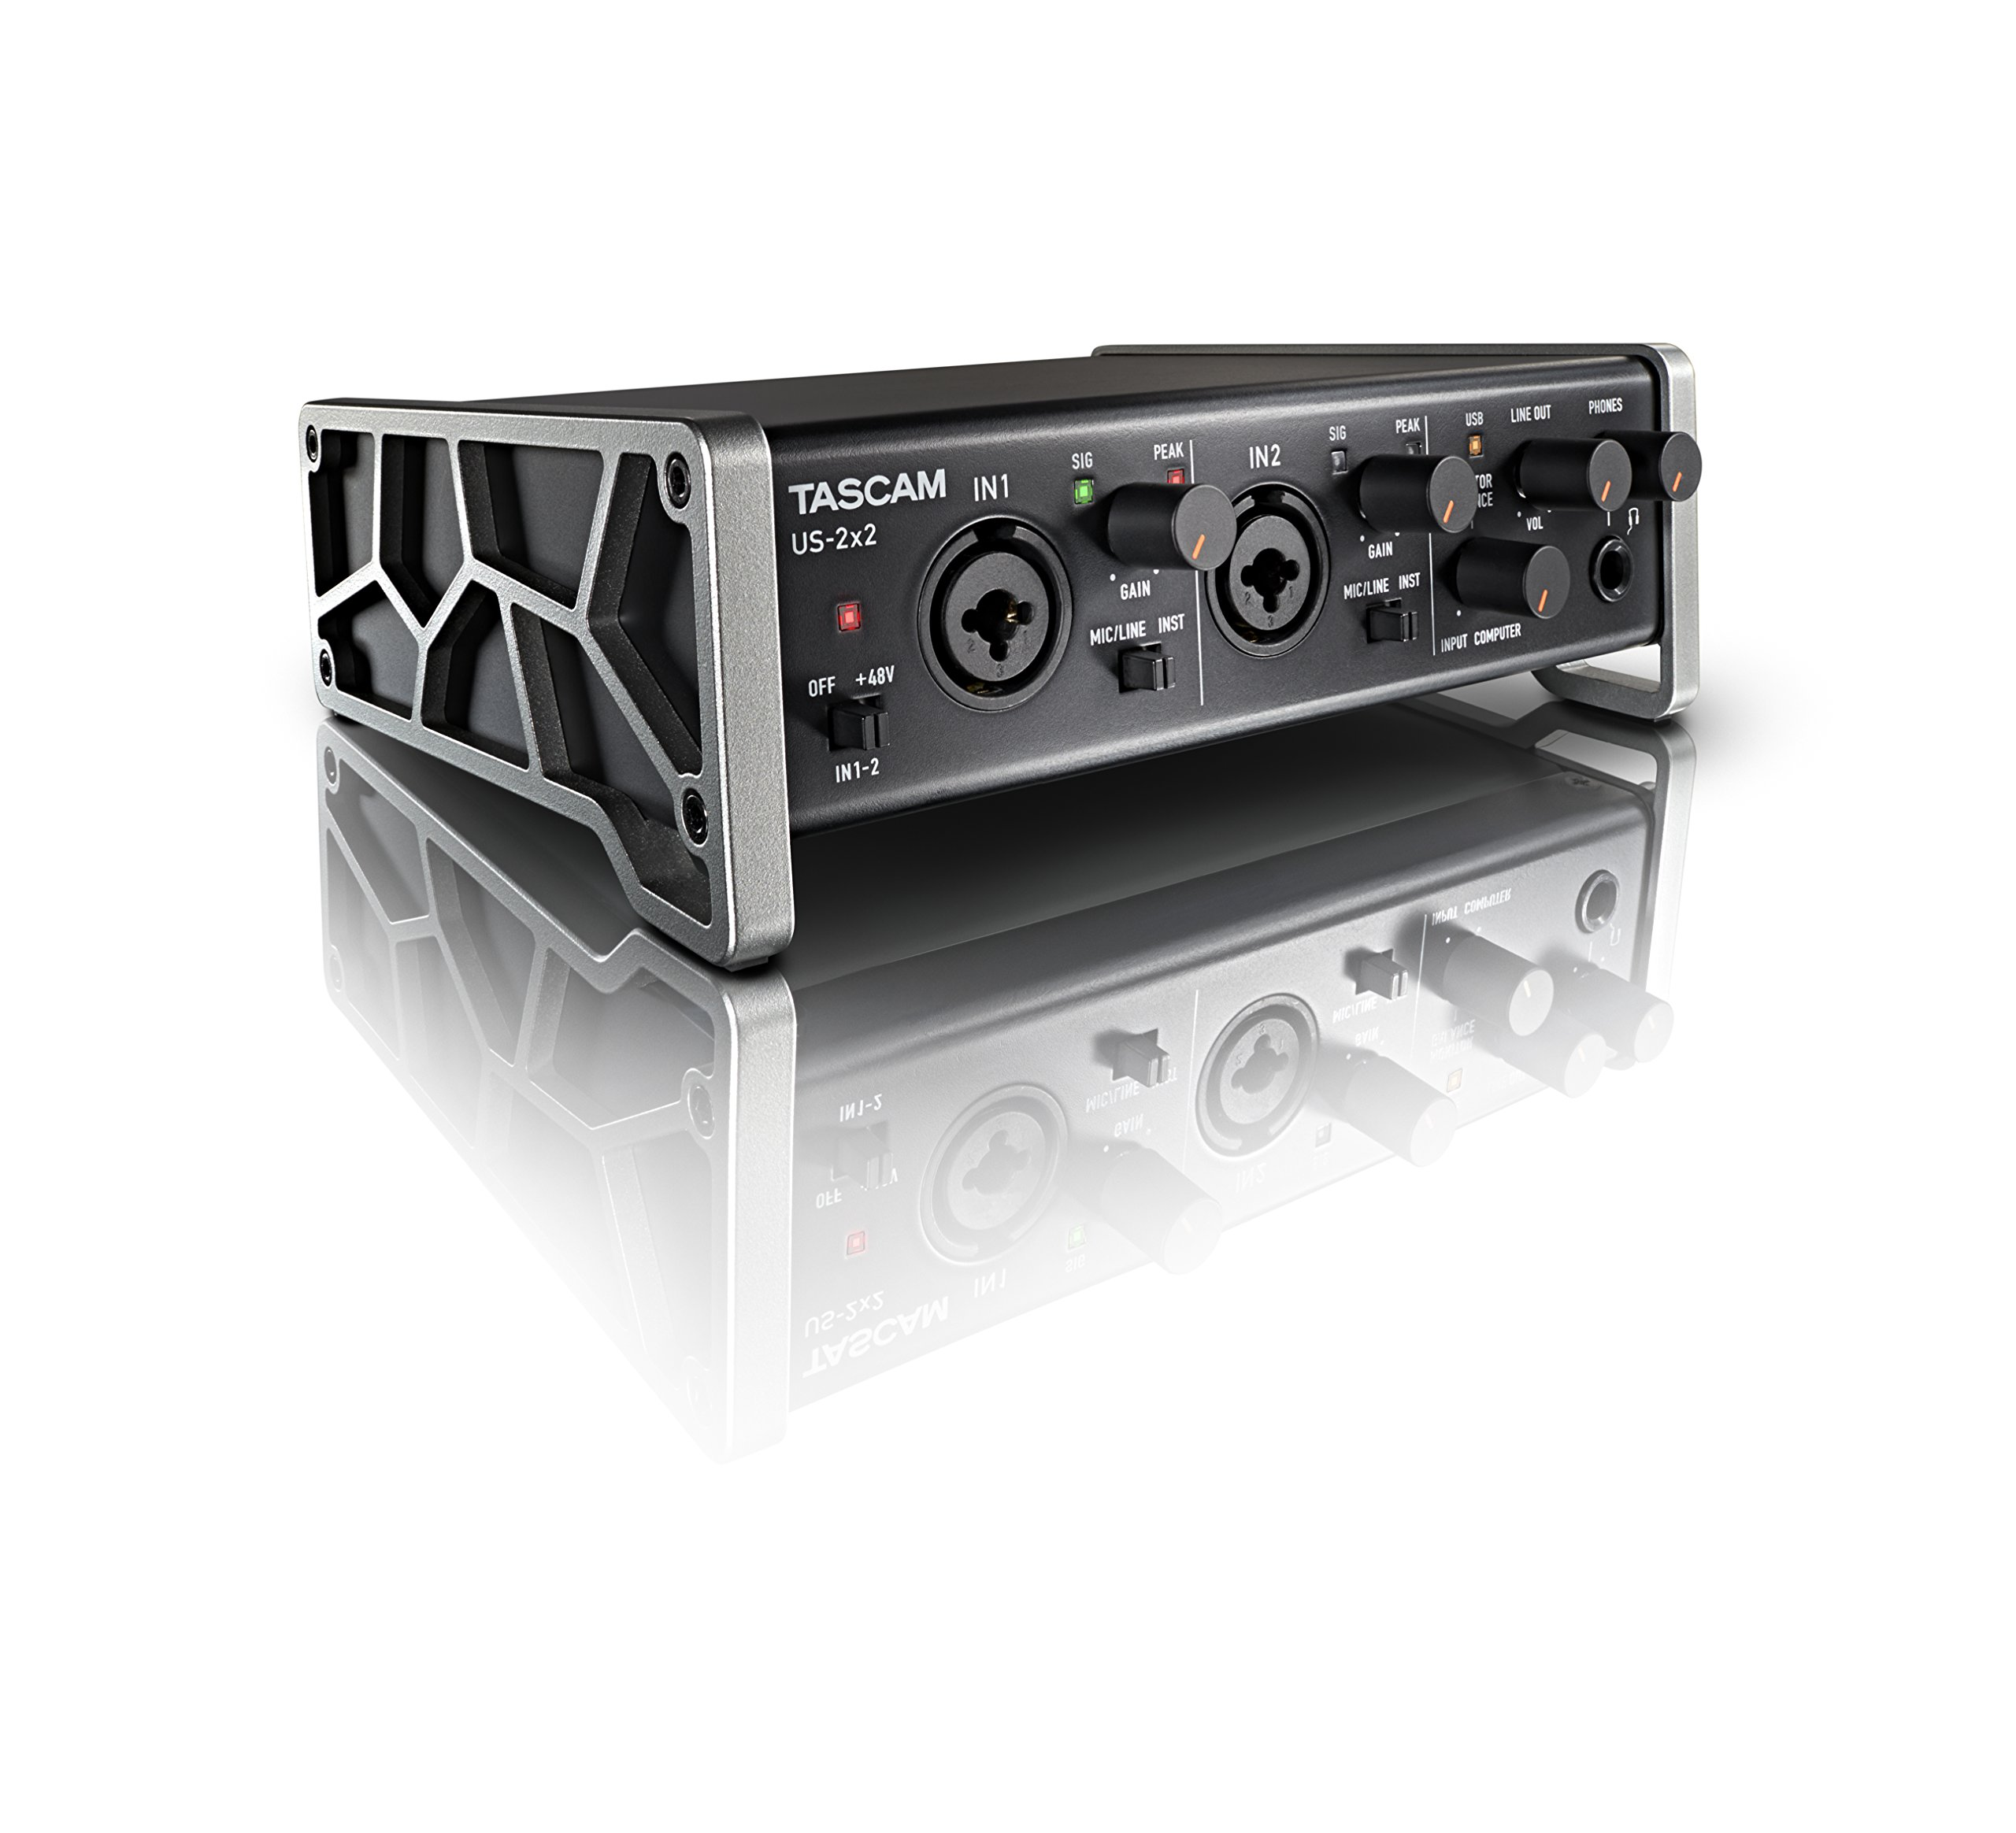 Tascam US-2x2 USB Audio/MIDI Interface with Microphone Preamps and iOS Compatibility